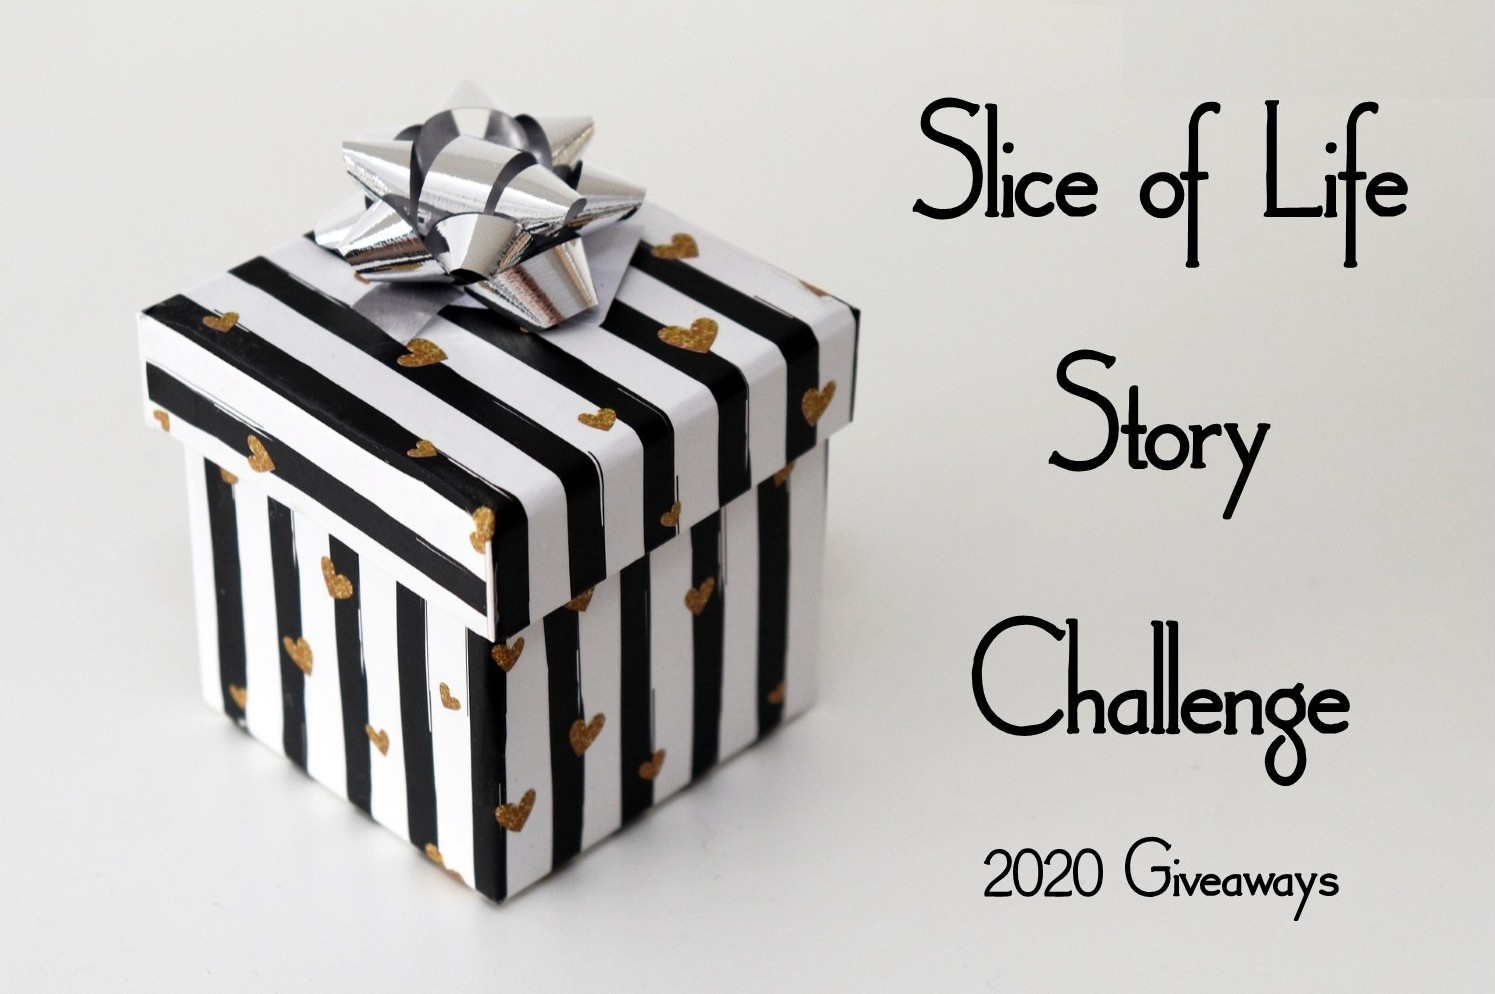 Slice of Life Story Challenge 2020: Prize Reveal